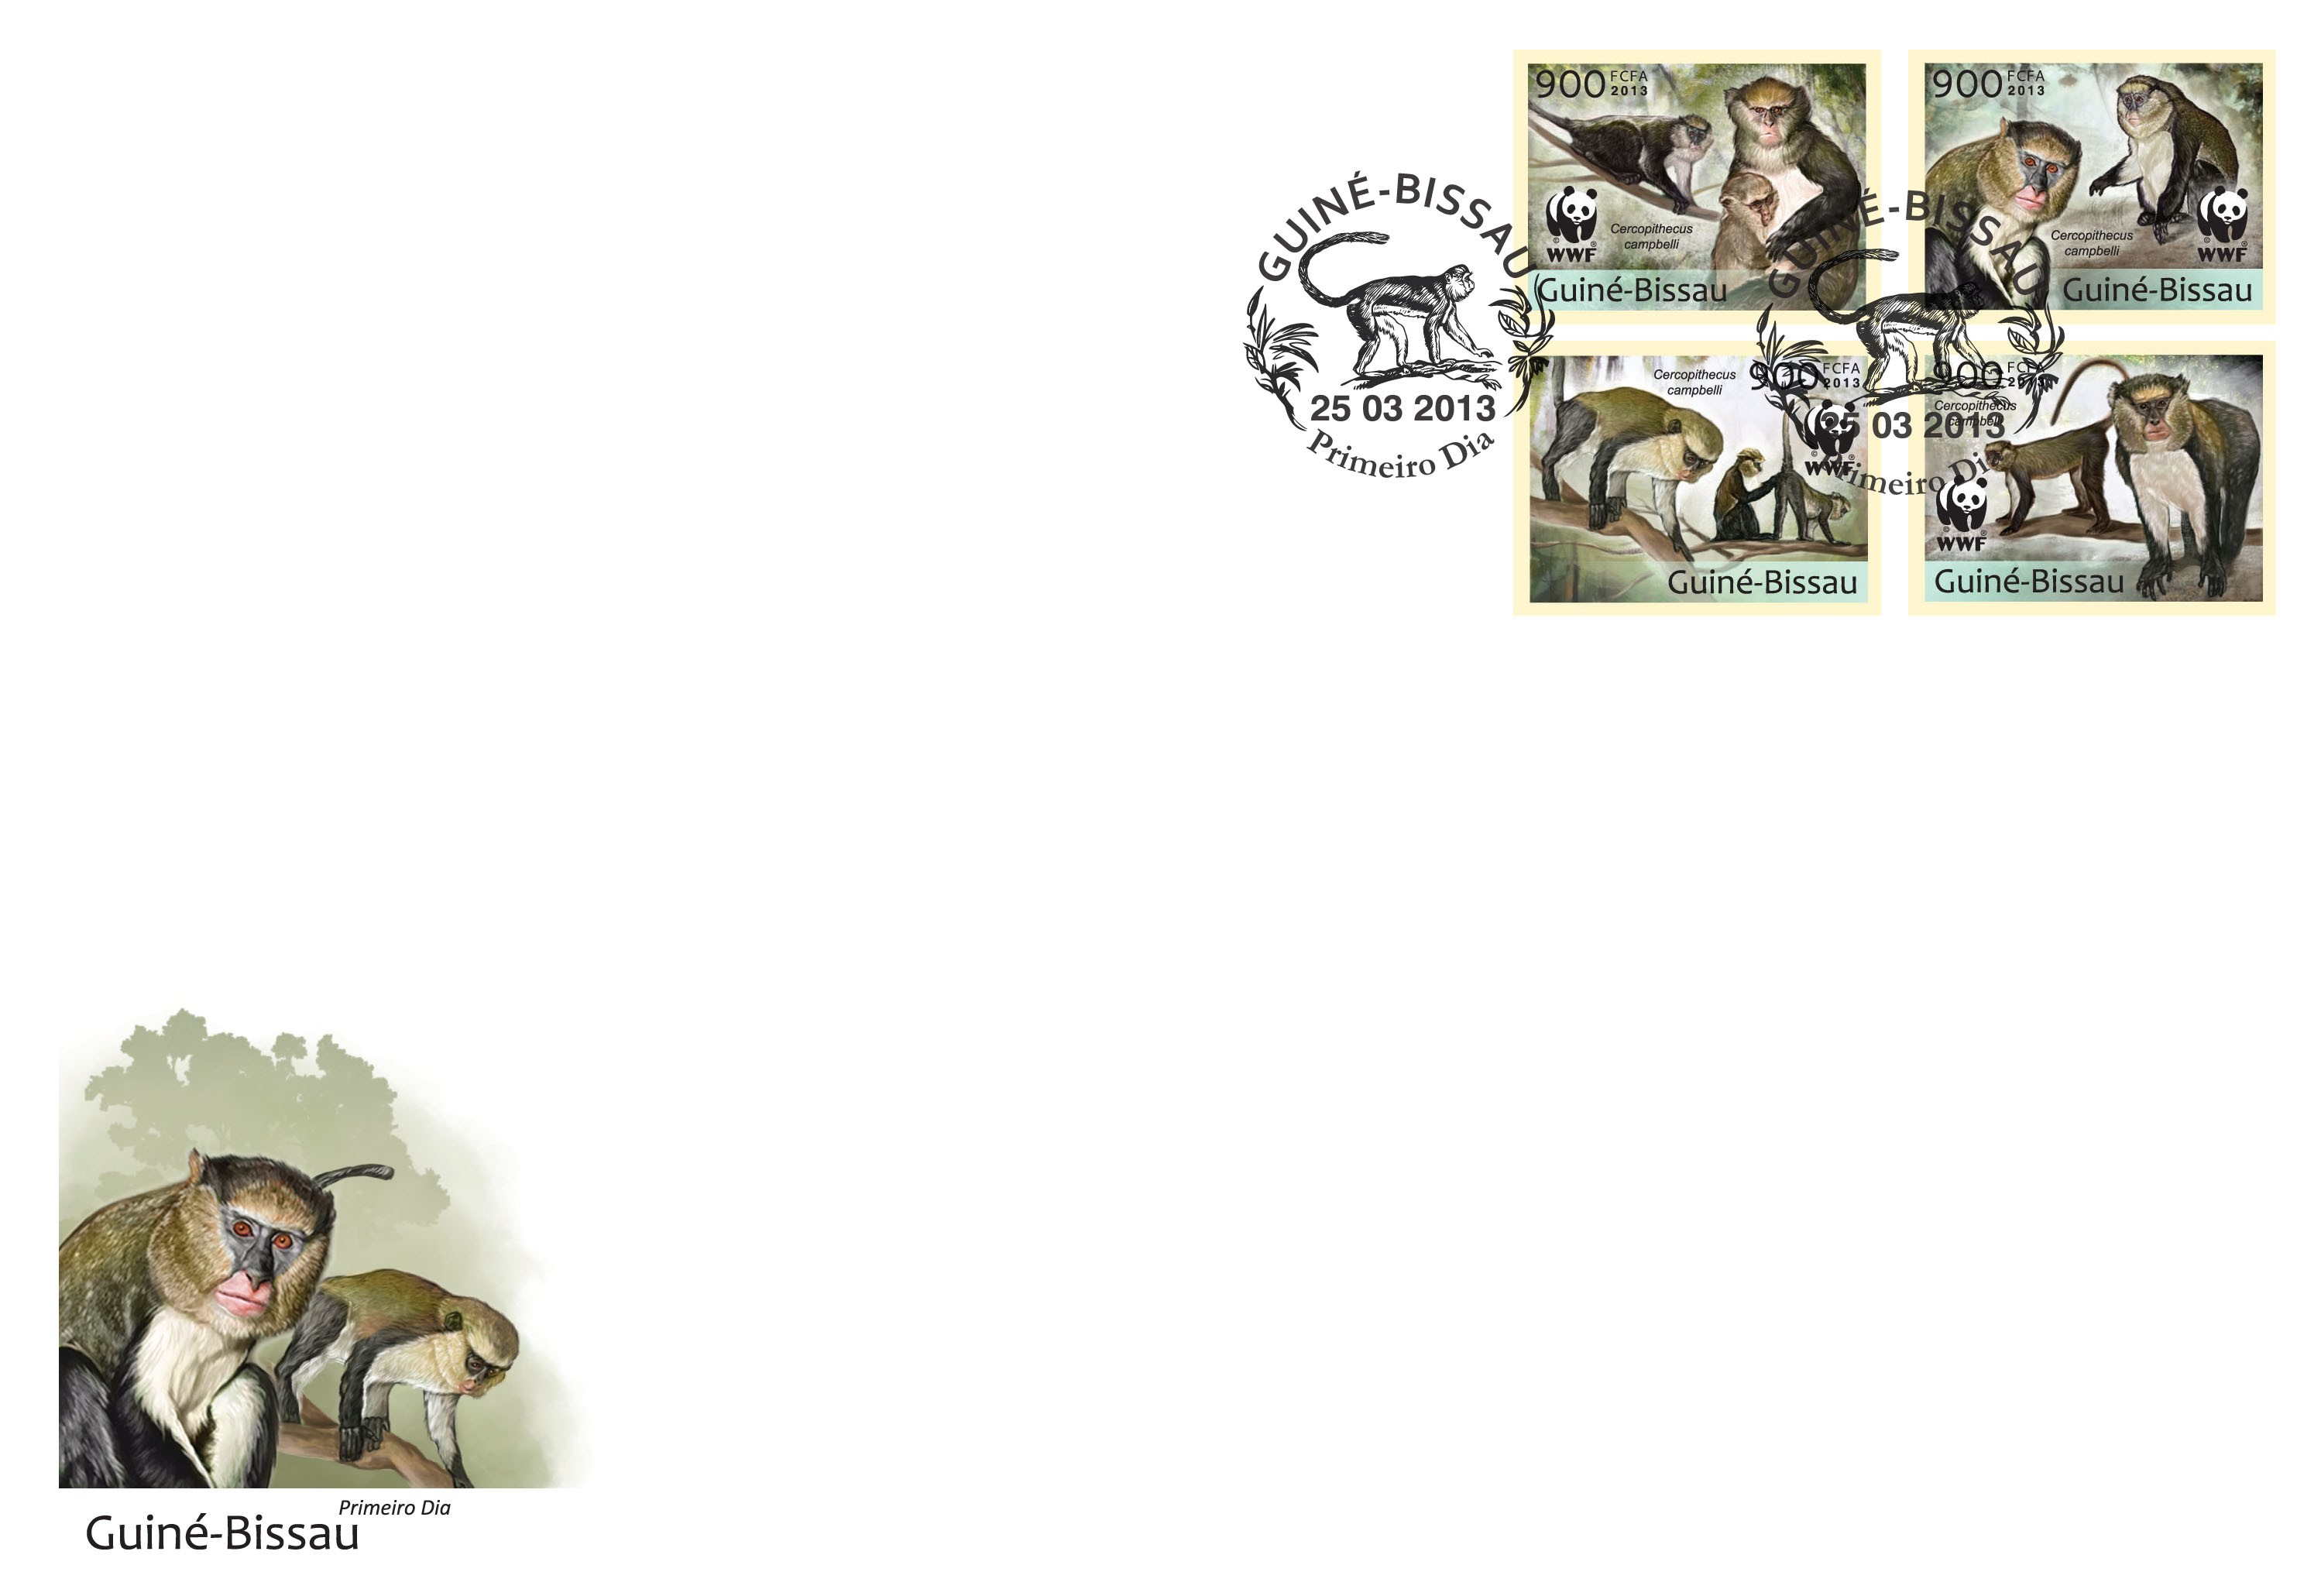 WWF - Monkeys (Cercopithecus campgelli) Set of 4 value - FDC Imperforated - Issue of Guinée-Bissau postage stamps